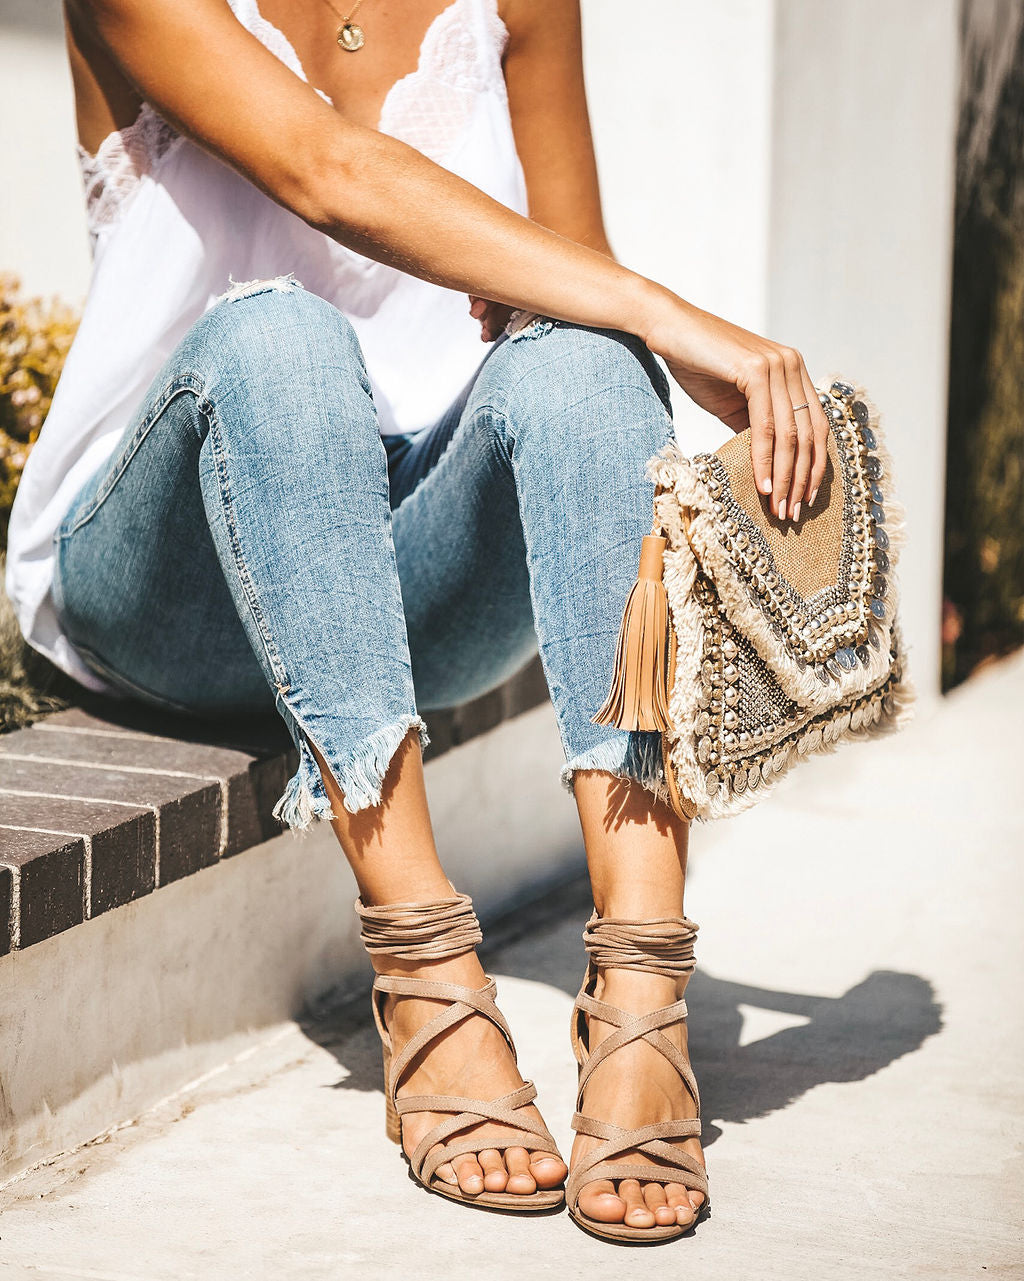 d9cd06425 Marbella Strappy Heeled Sandal - Taupe – VICI